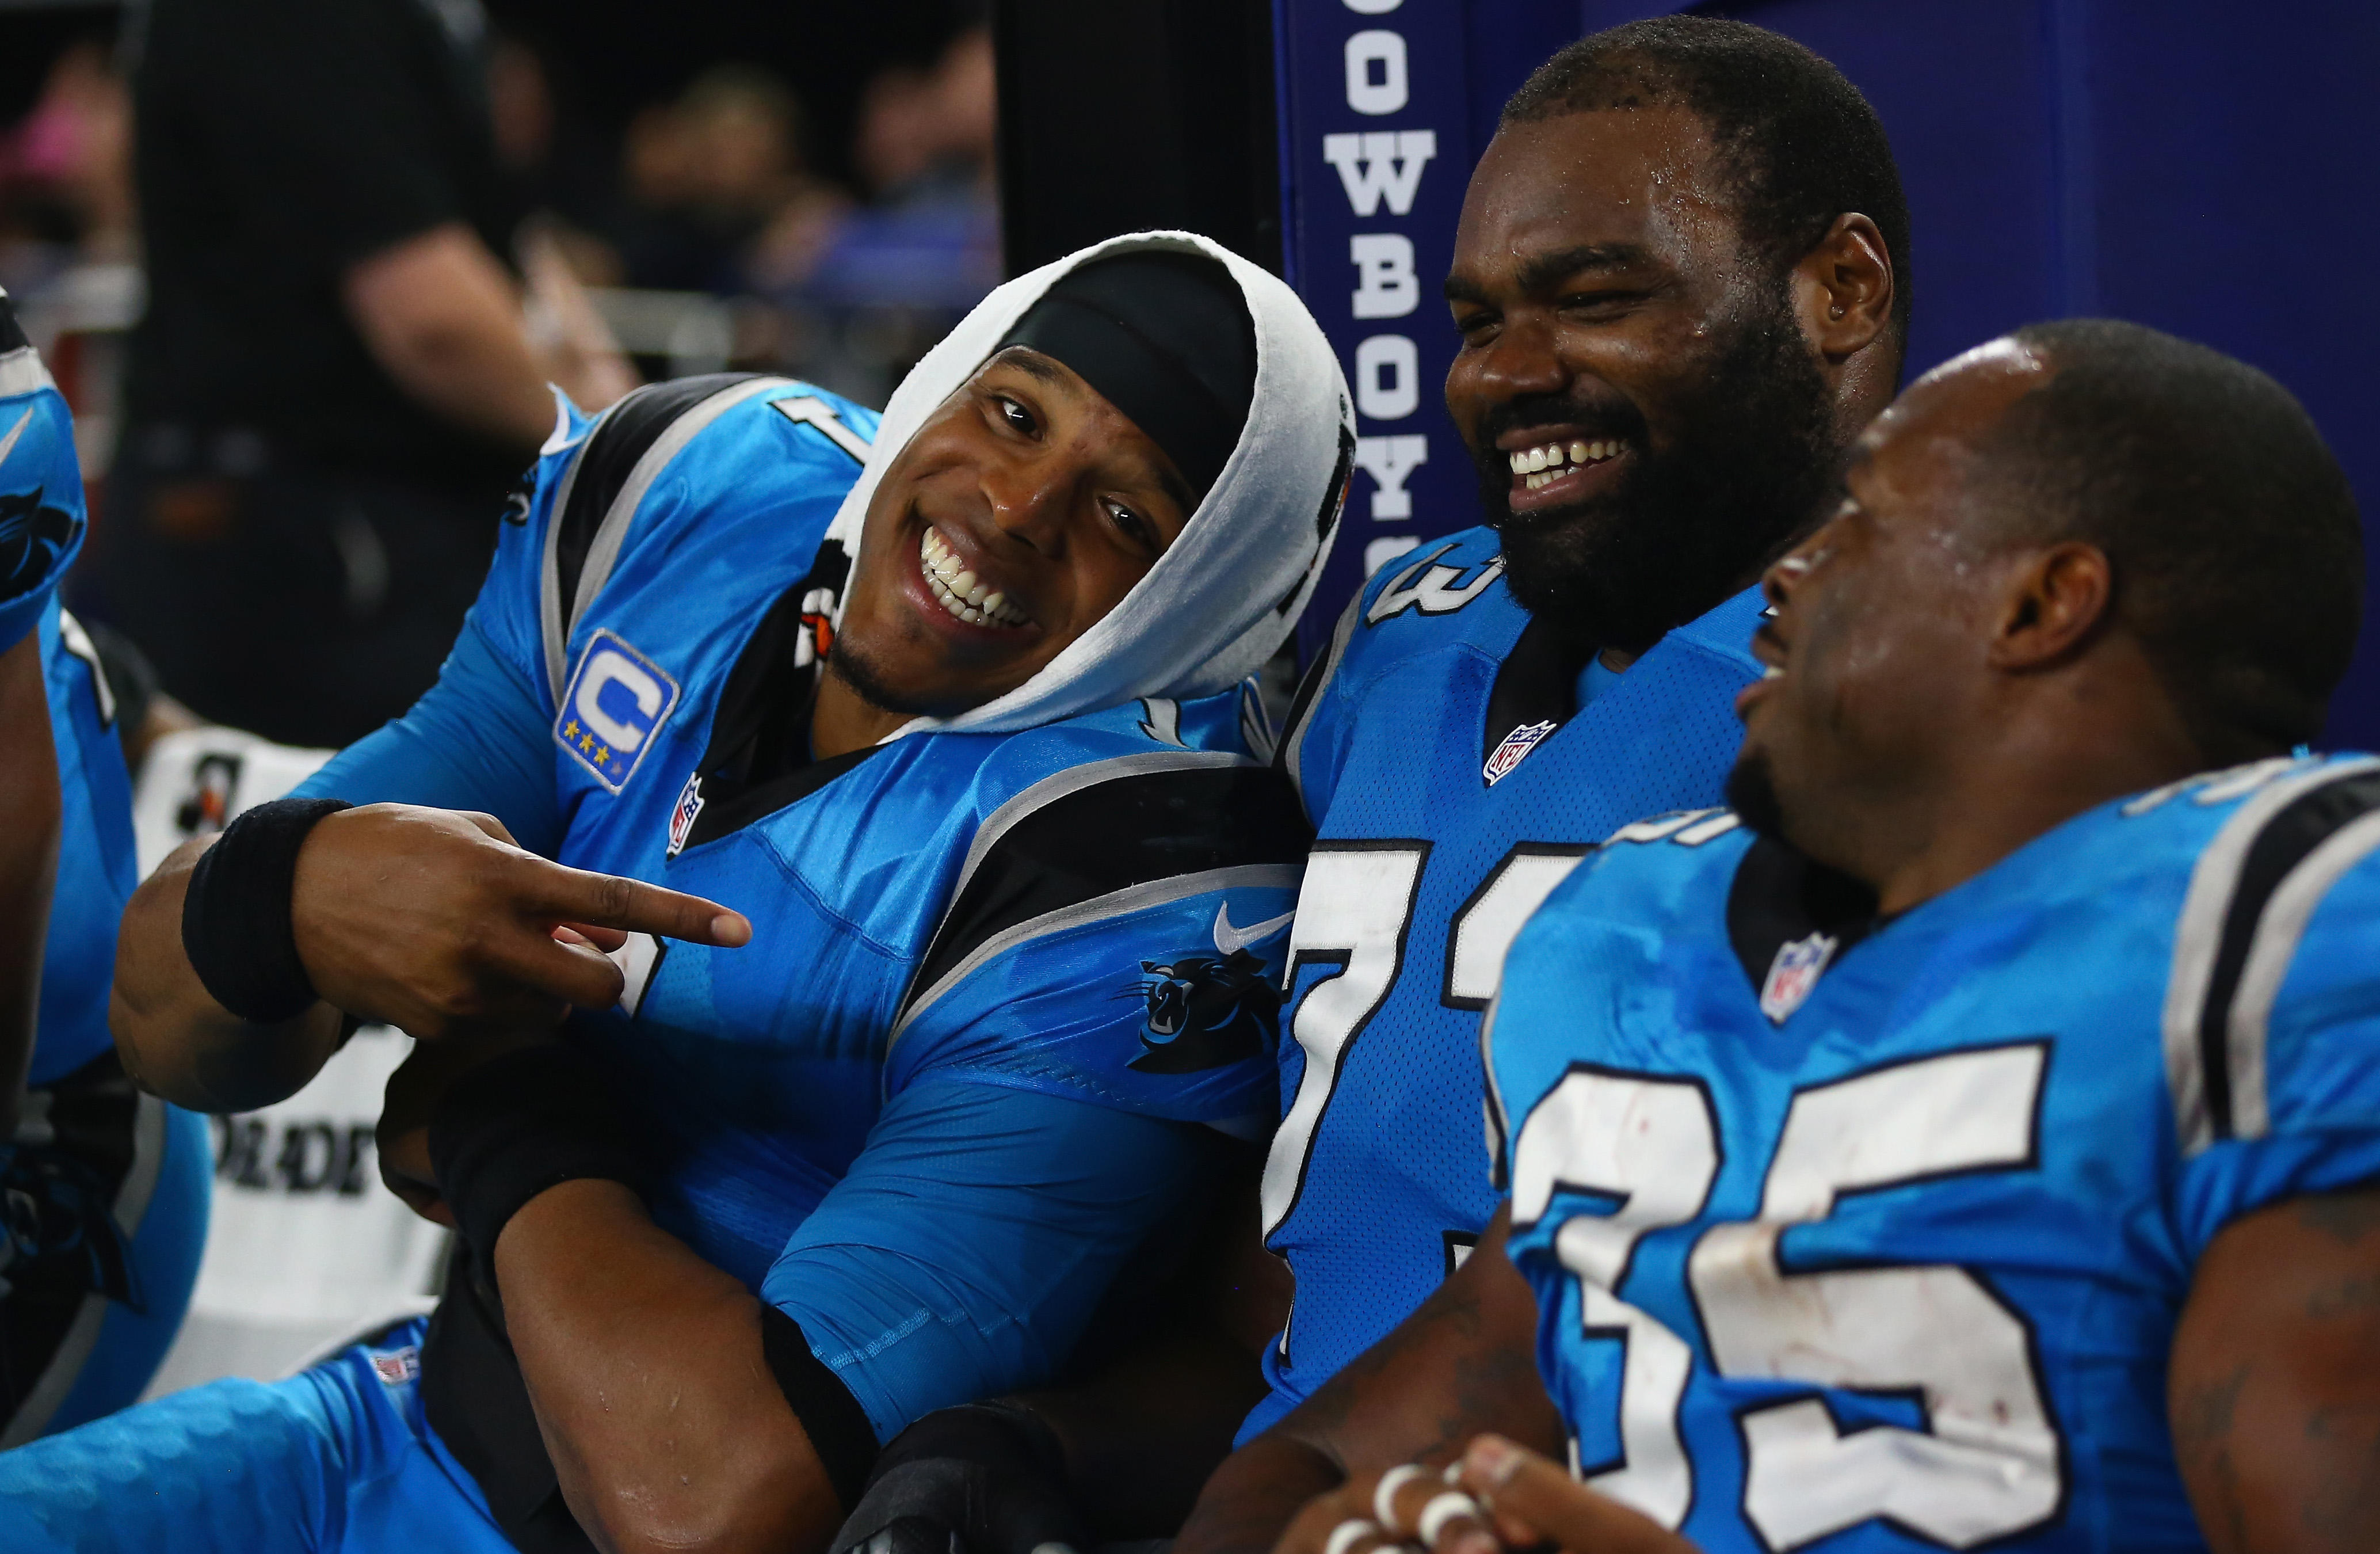 The Carolina Panthers paid homage to the